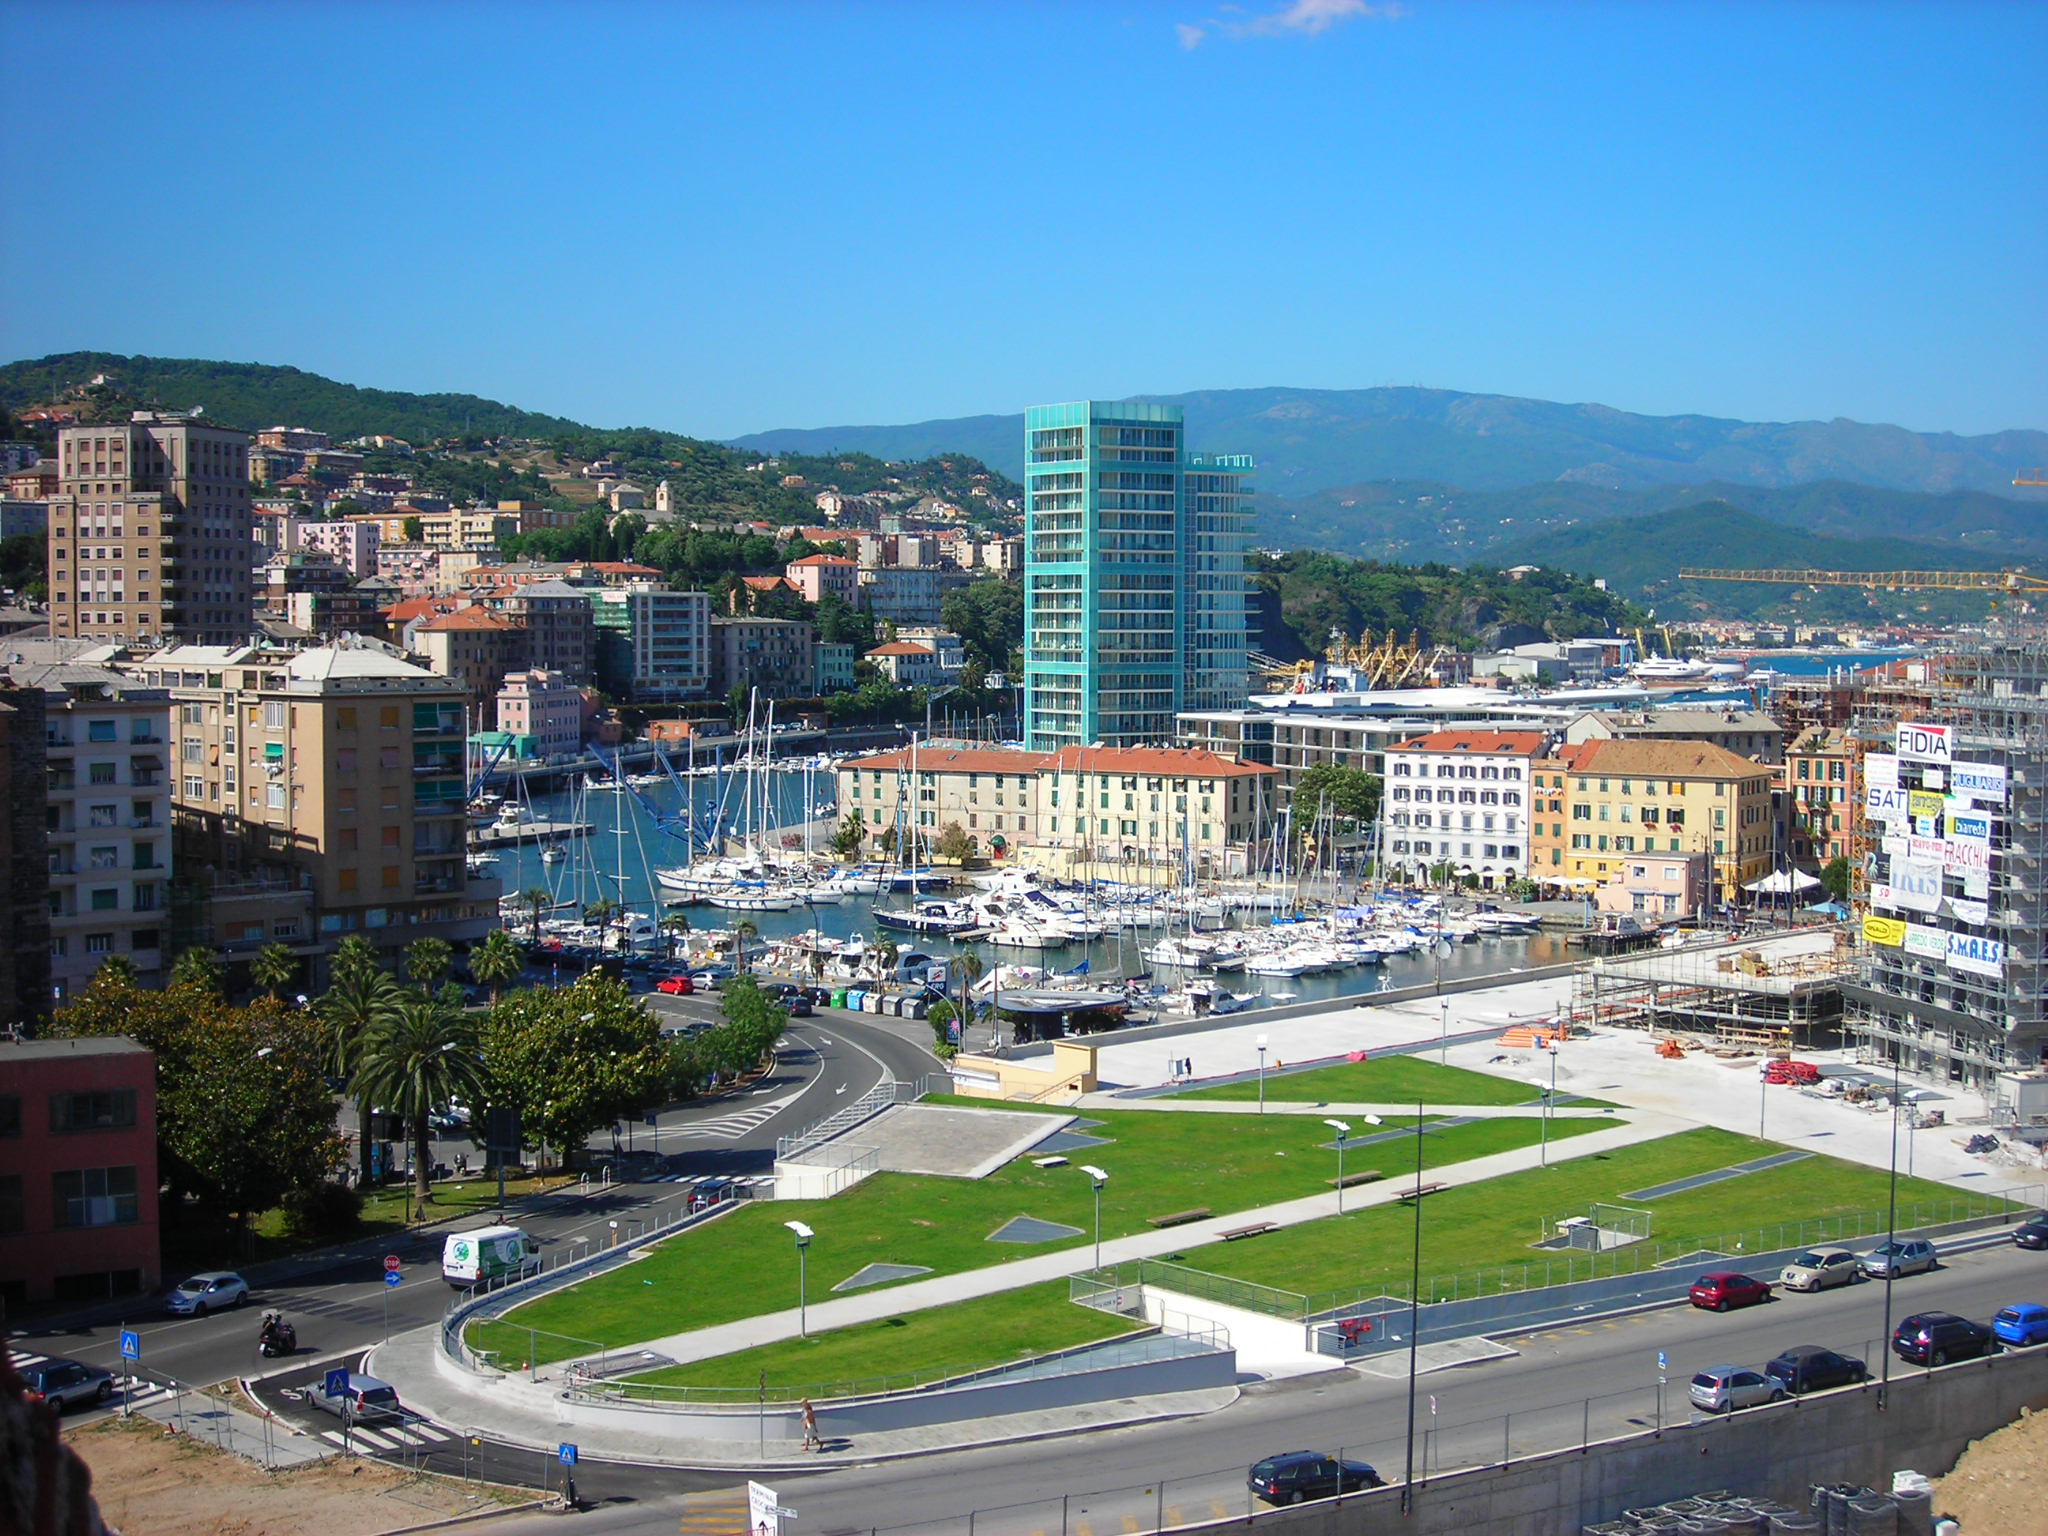 savona dating The smart city energy infrastructures at the savona campus of the university of   date of conference: 5-7 oct 2016 date added to ieee xplore: 06 april 2017.